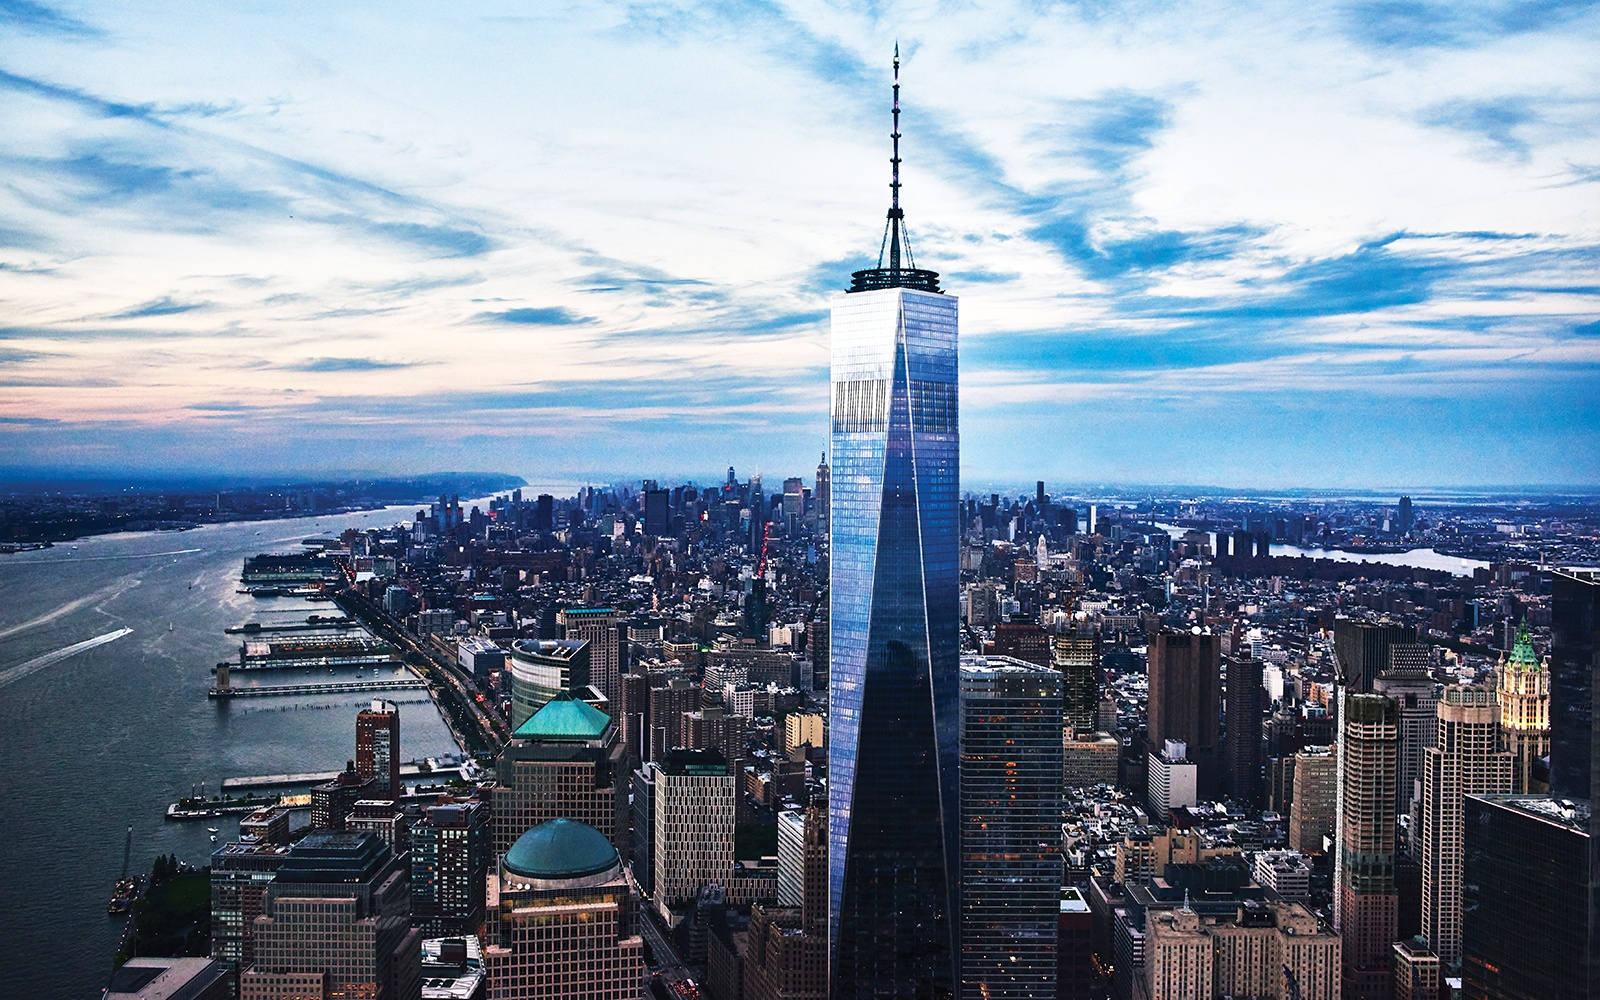 Conocer One World Observatory